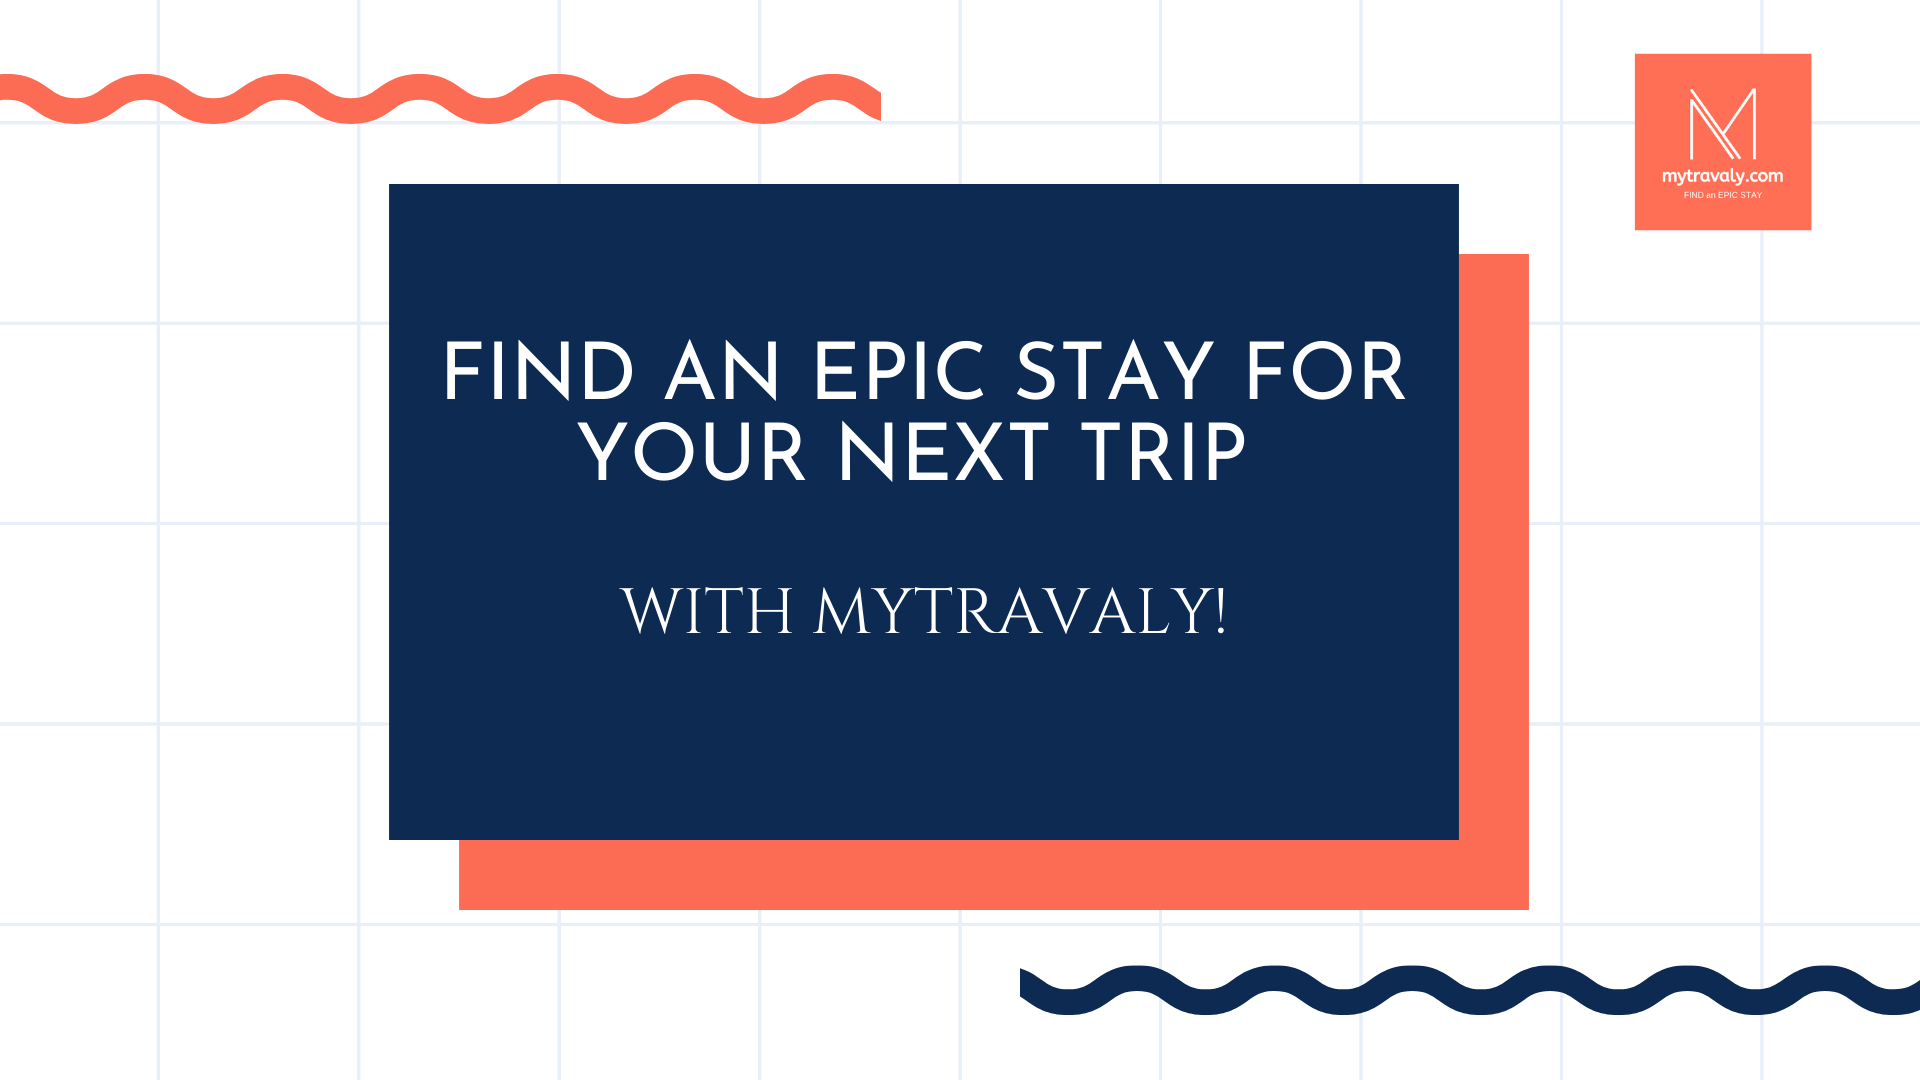 Find your Epic Stay at mytravaly.com